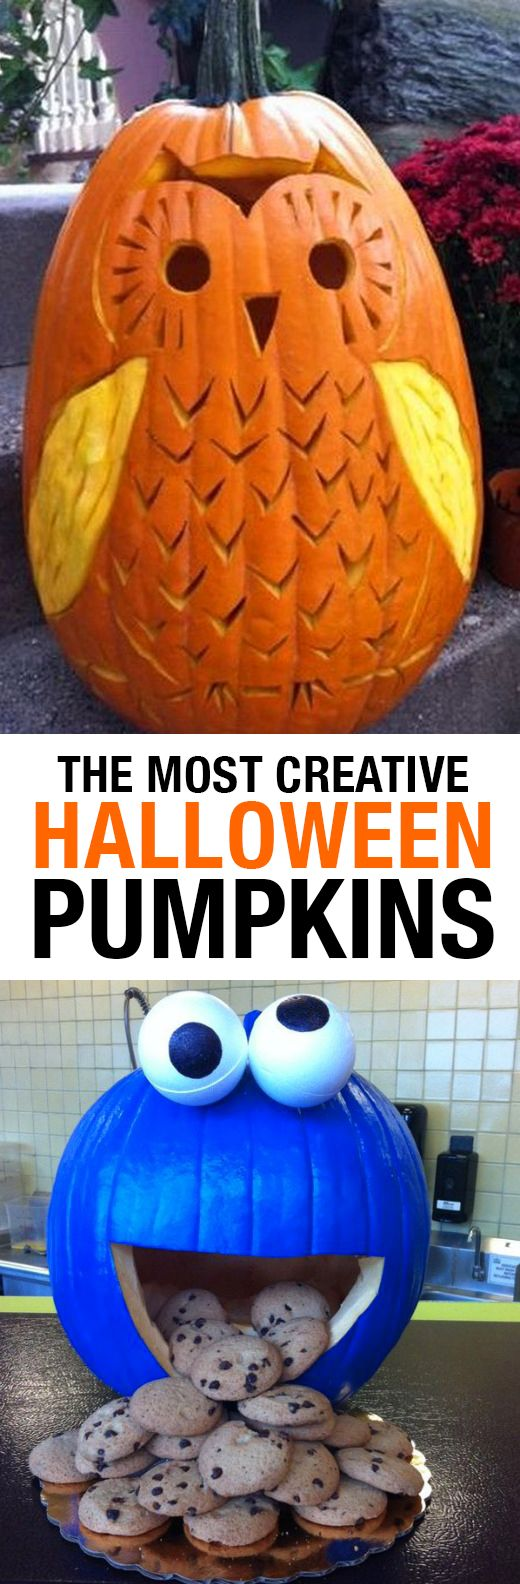 Whether you enjoy carving or painting best, you'll love these inspiring ideas for your Halloween Pumpkin! Disney, Cookie Monster, other animals and more.